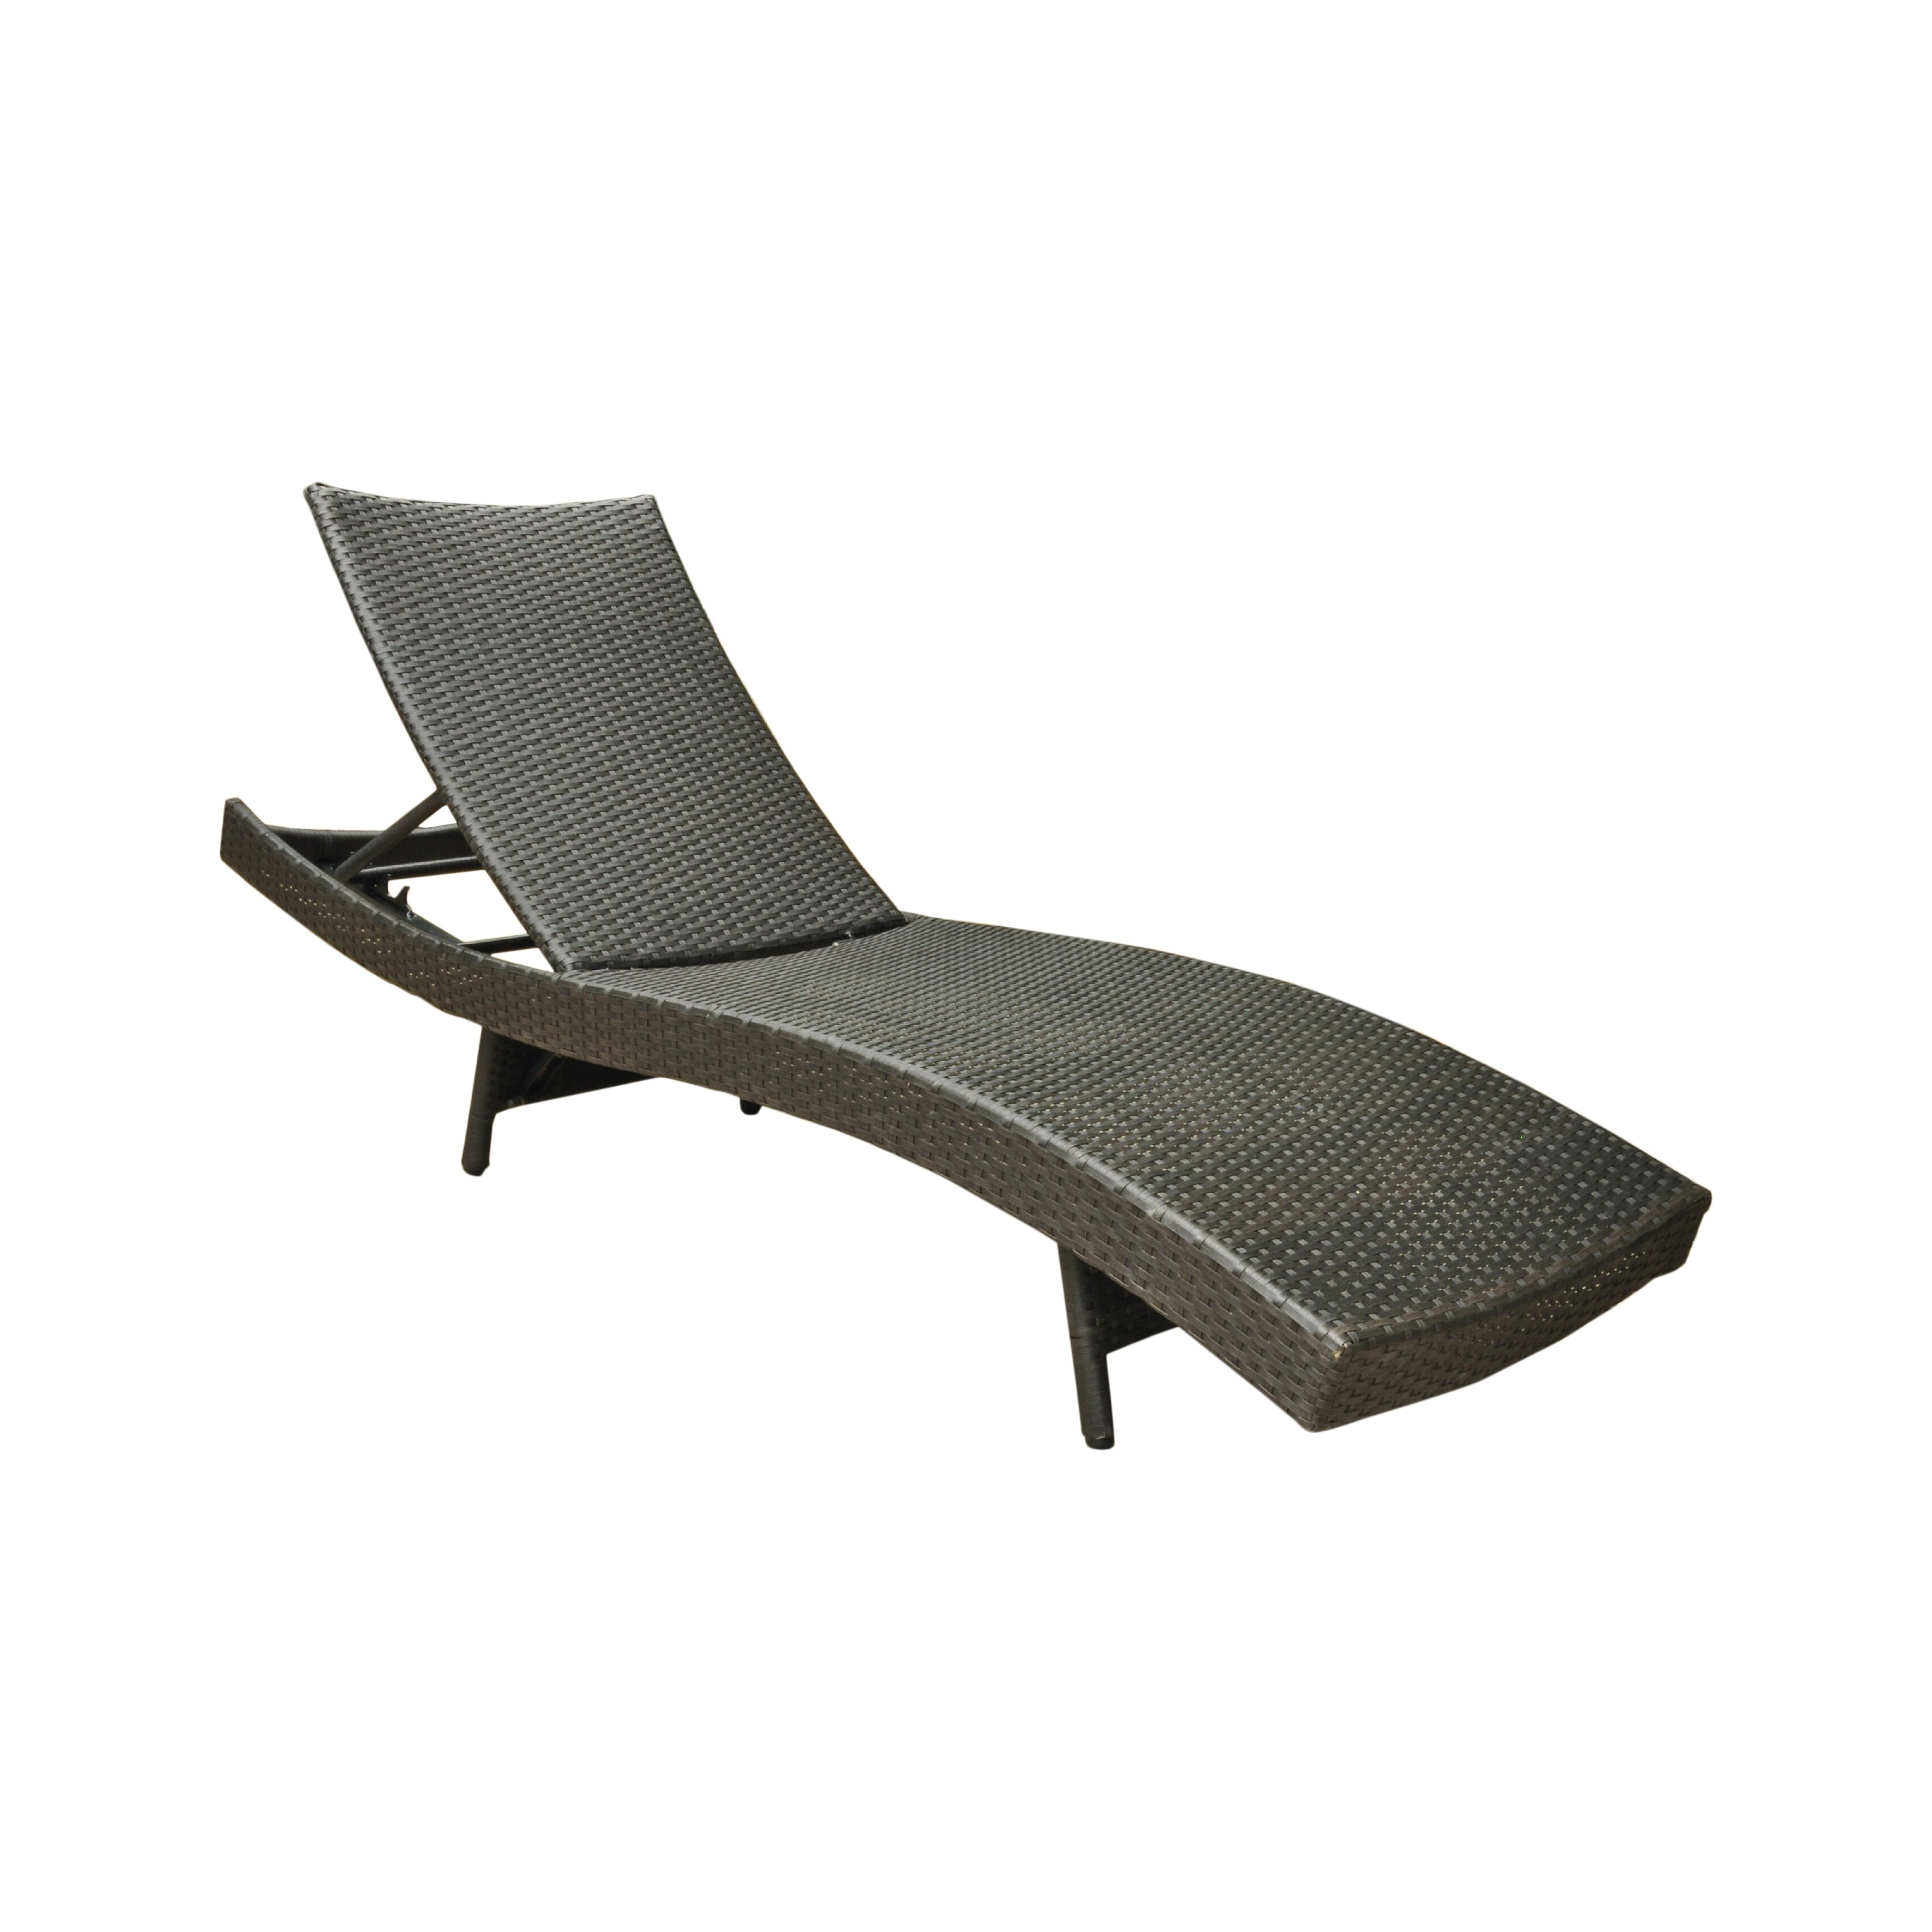 Brayden studio katzer chaise lounge reviews wayfair for Chaise longue barcelona